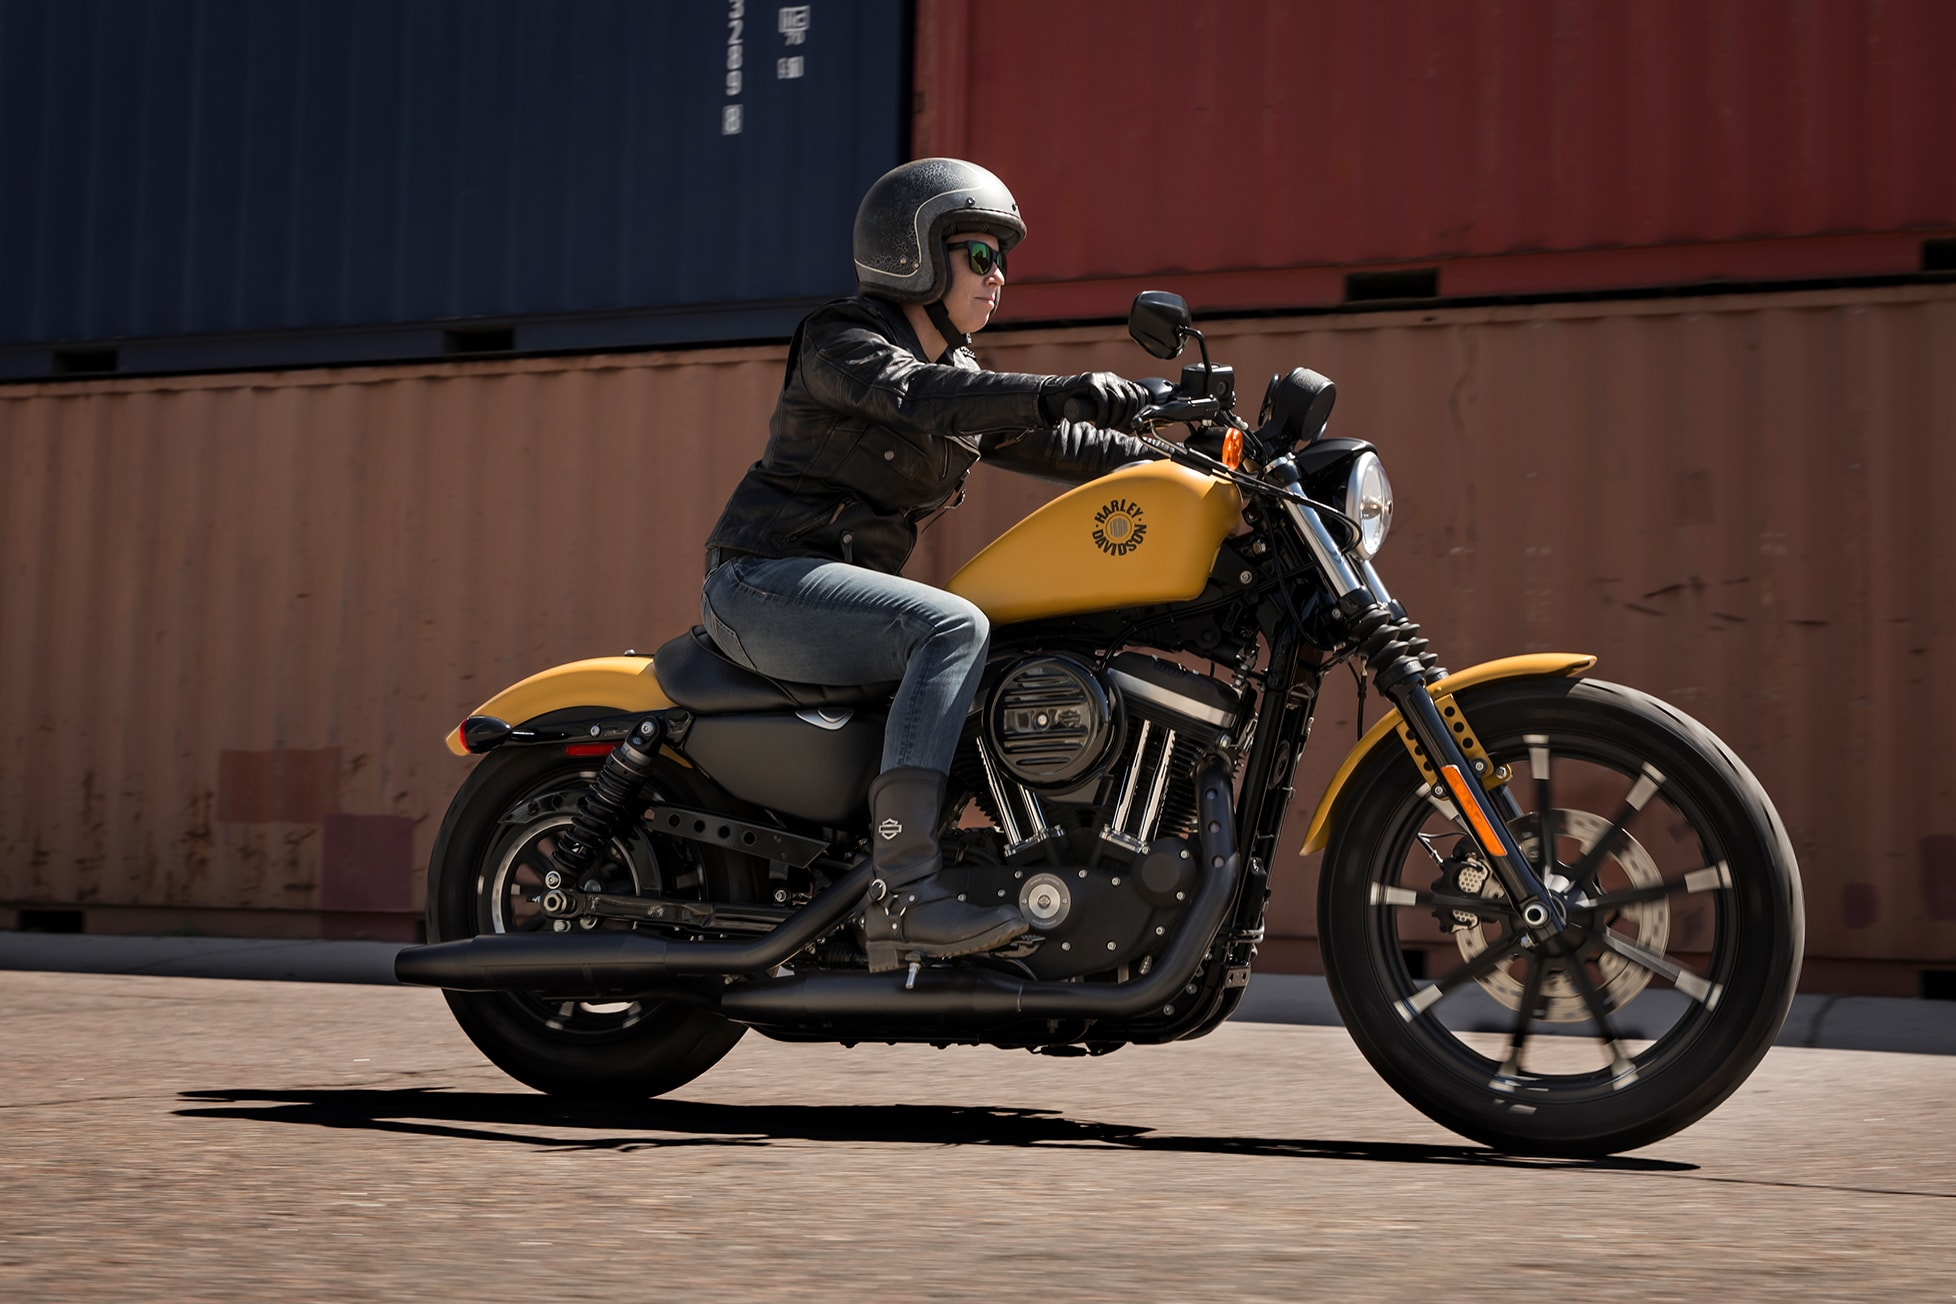 medium resolution of woman riding a 2019 iron 883 motorcycle